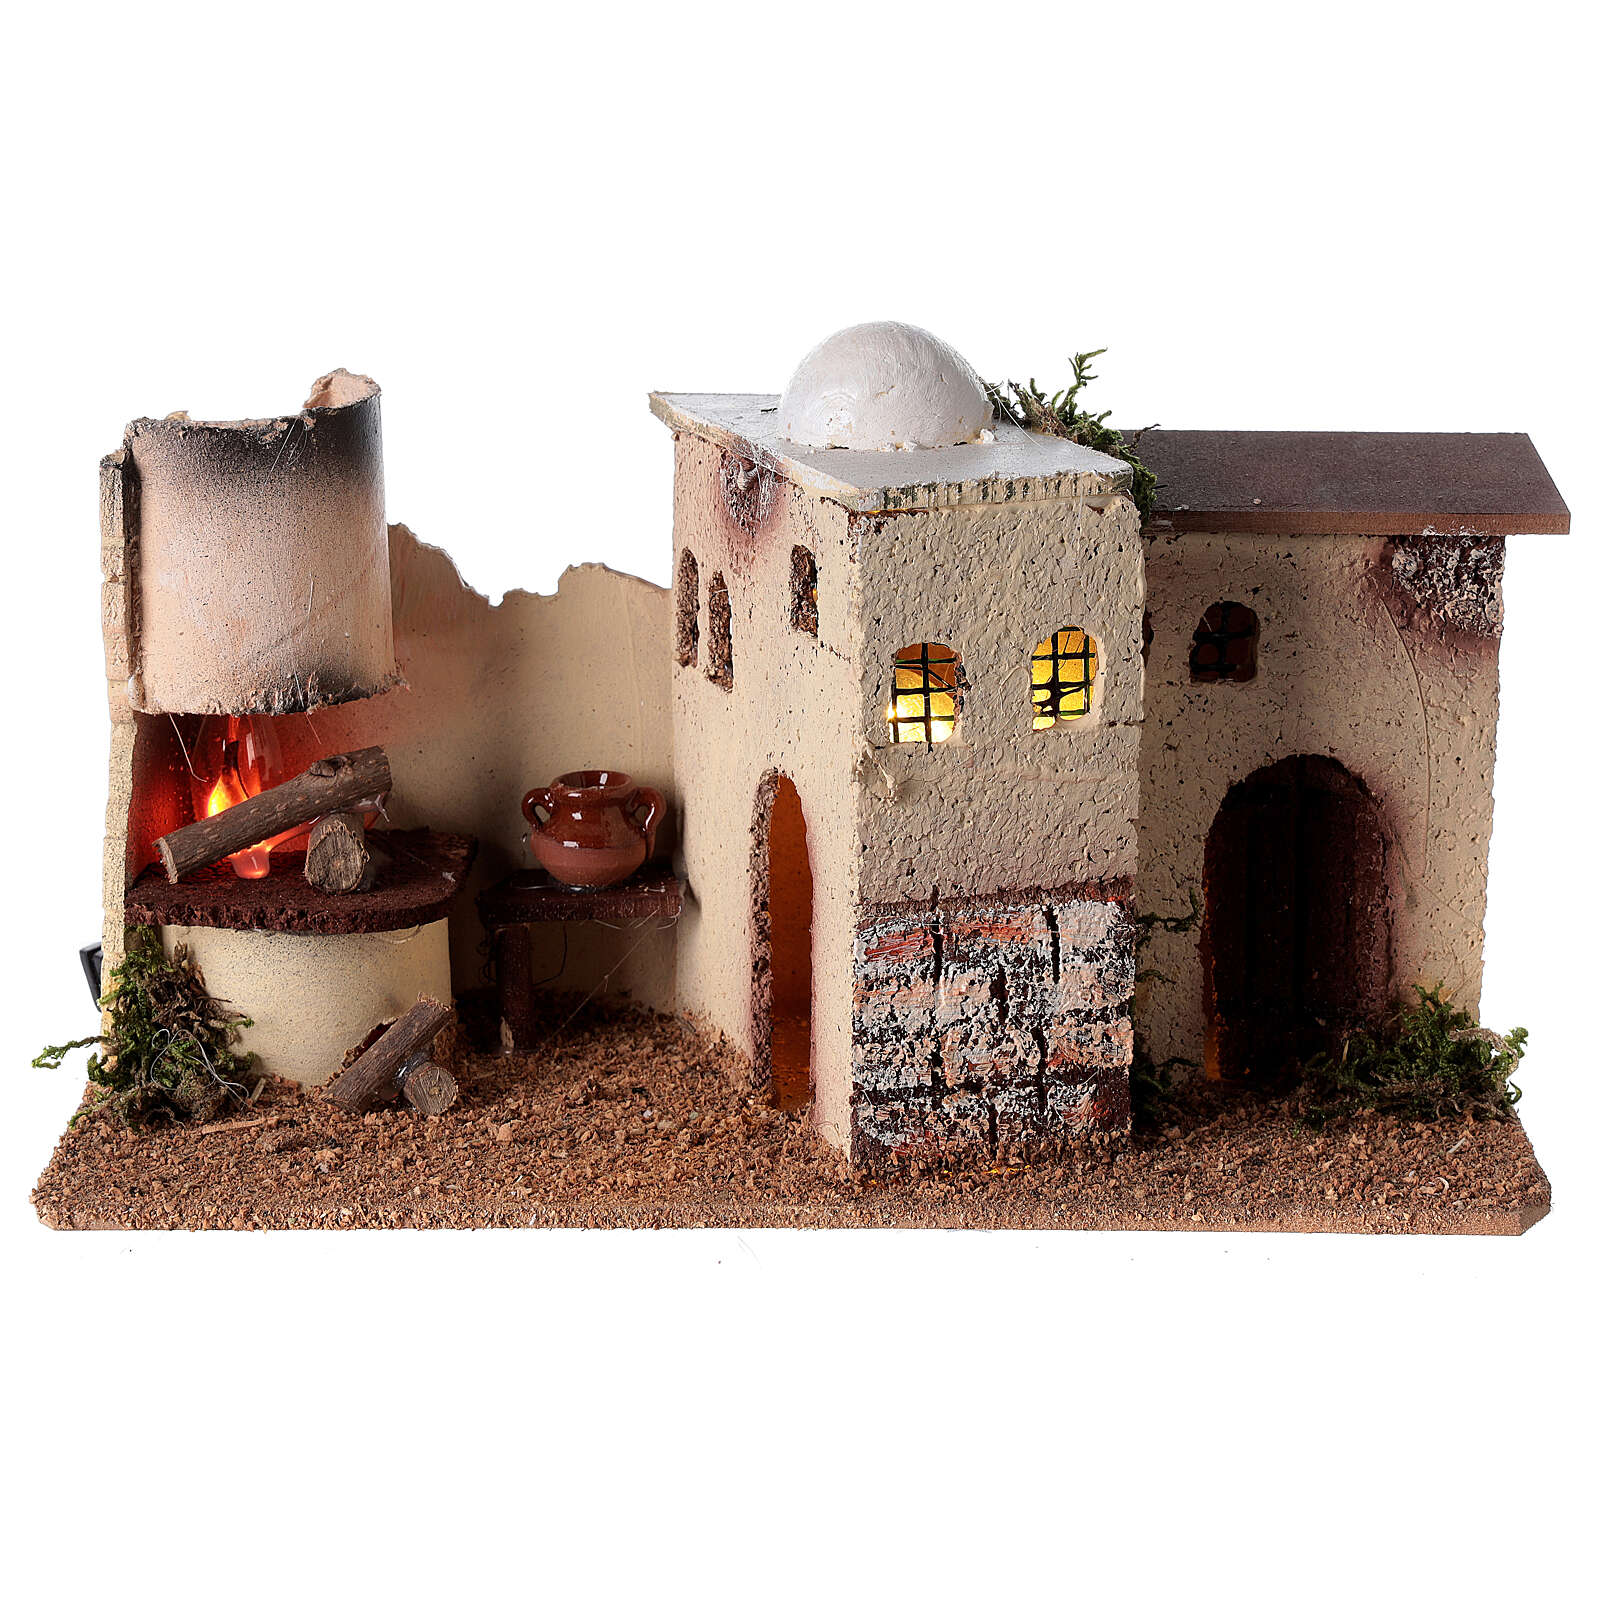 House with fire flickering light 15x35x15 cm for Nativity Scene with 8-10 cm figurines 4